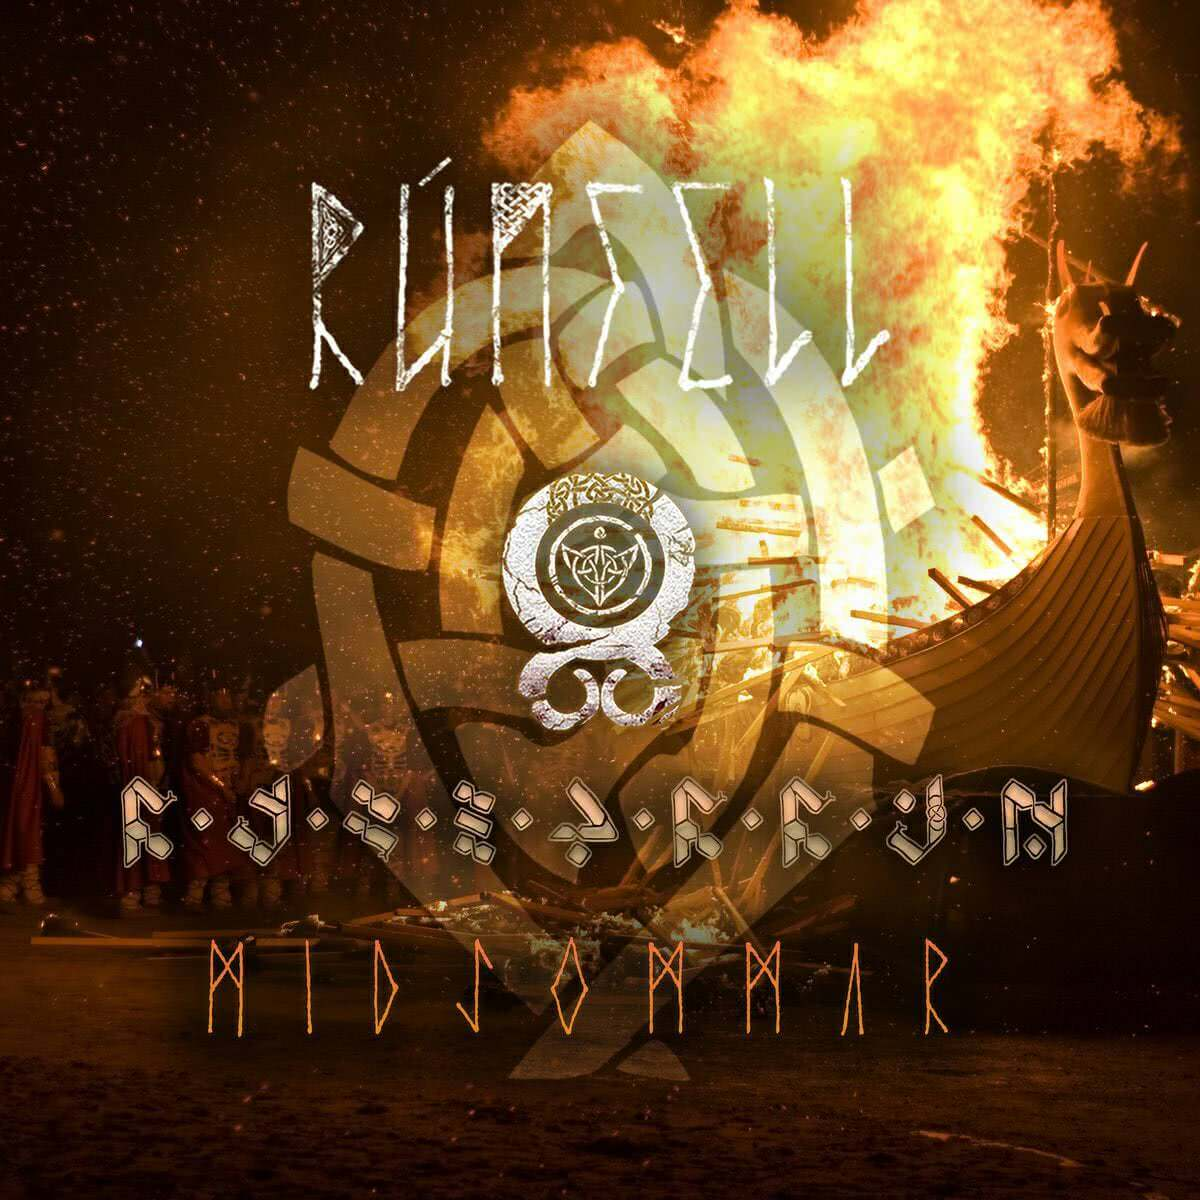 Rúnfell - Midsommar (Single) (2021)